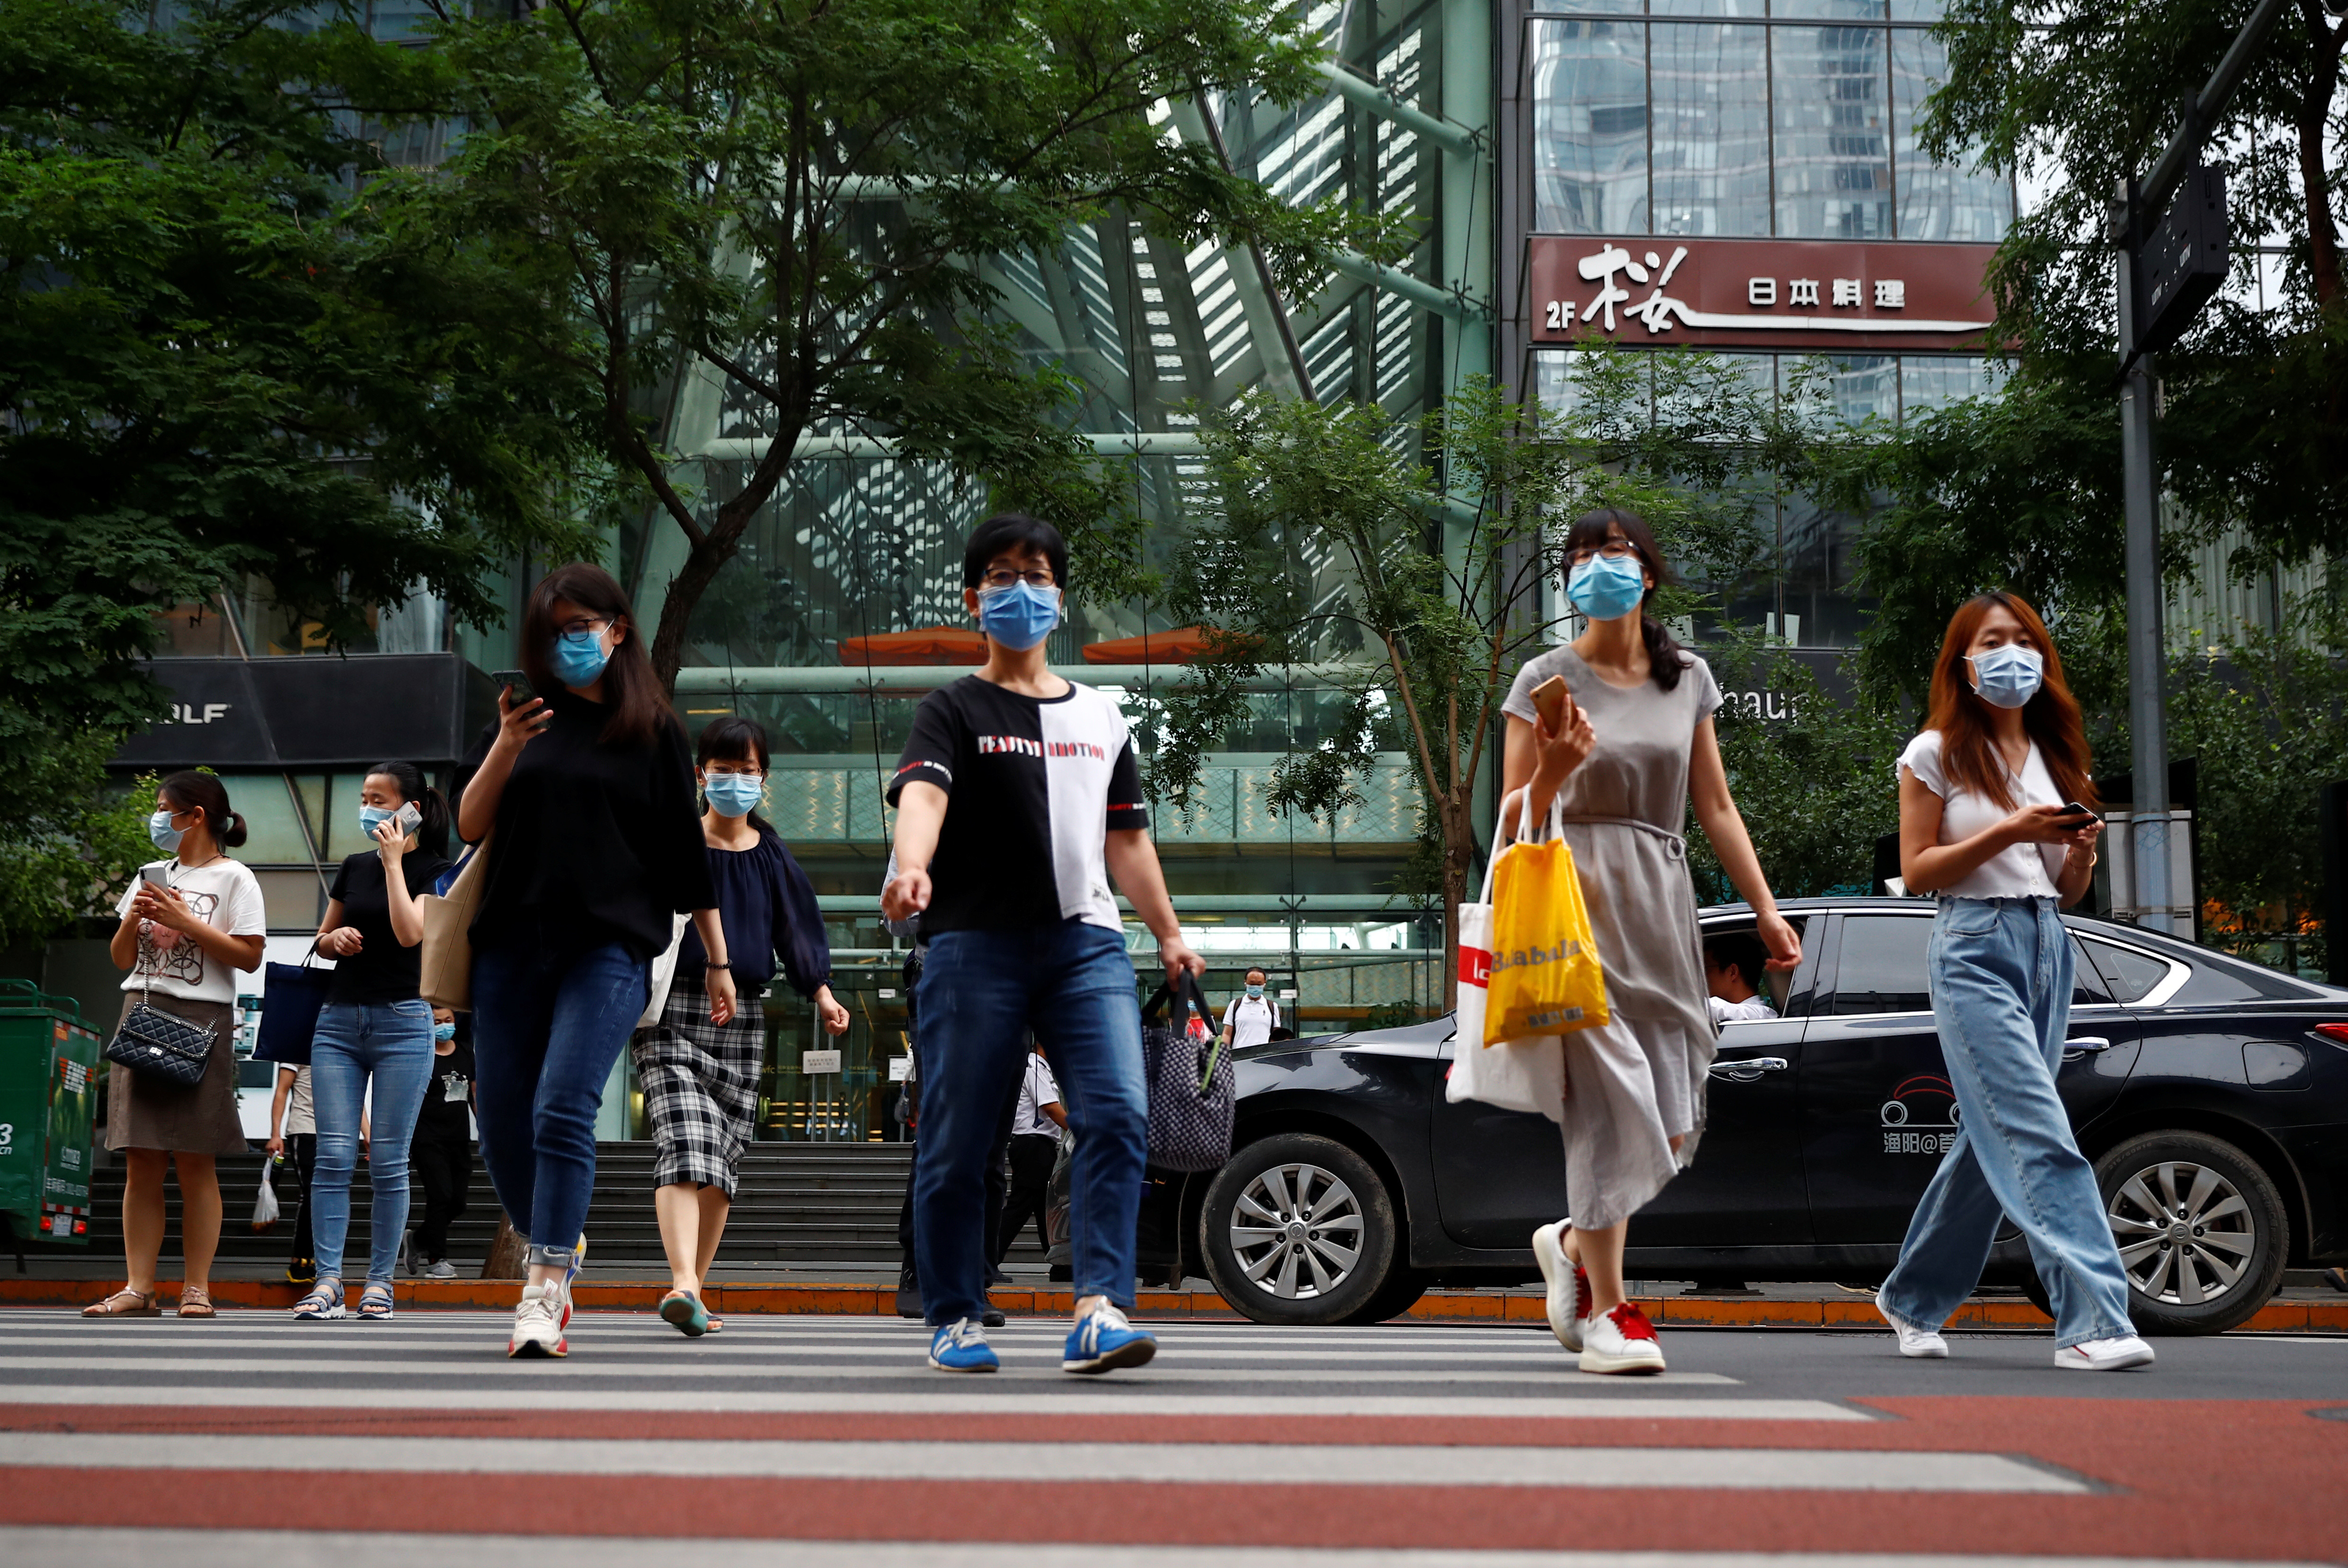 Global GDP could return to pre-pandemic levels as early as 2021, says OECD